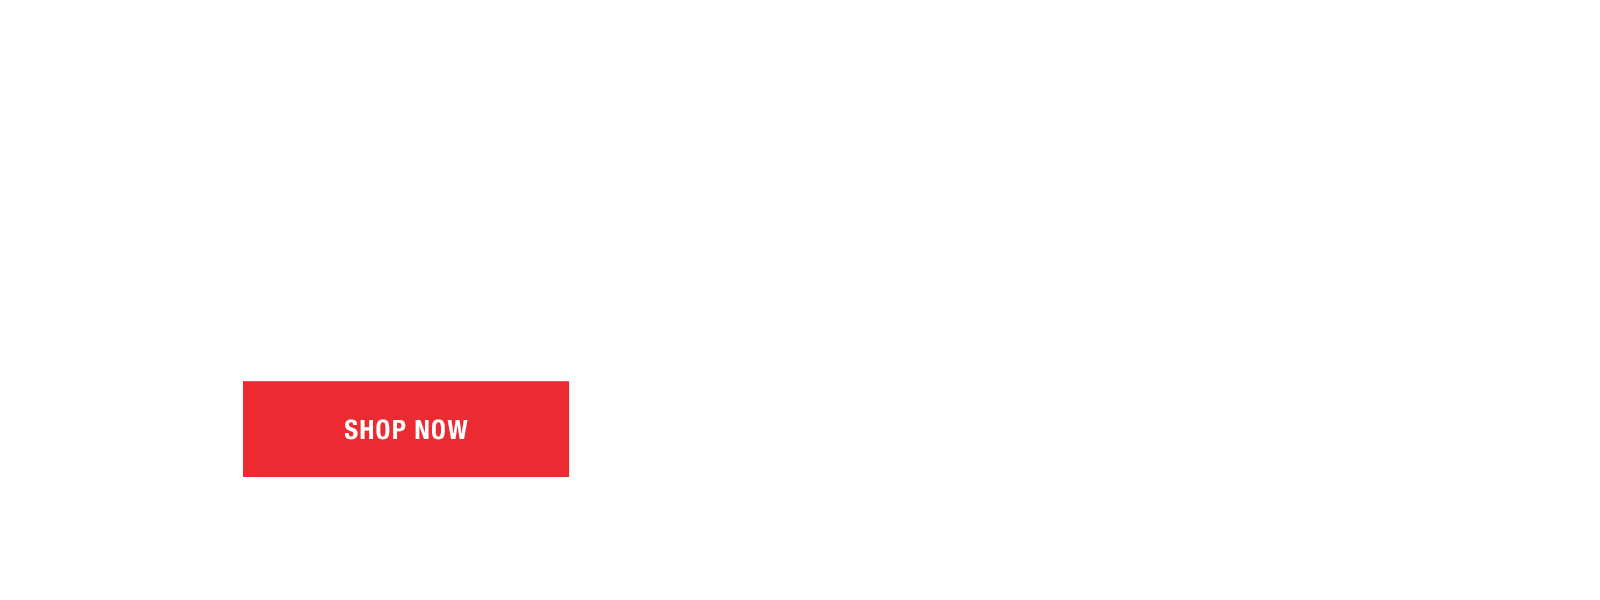 Women's activewear apparel